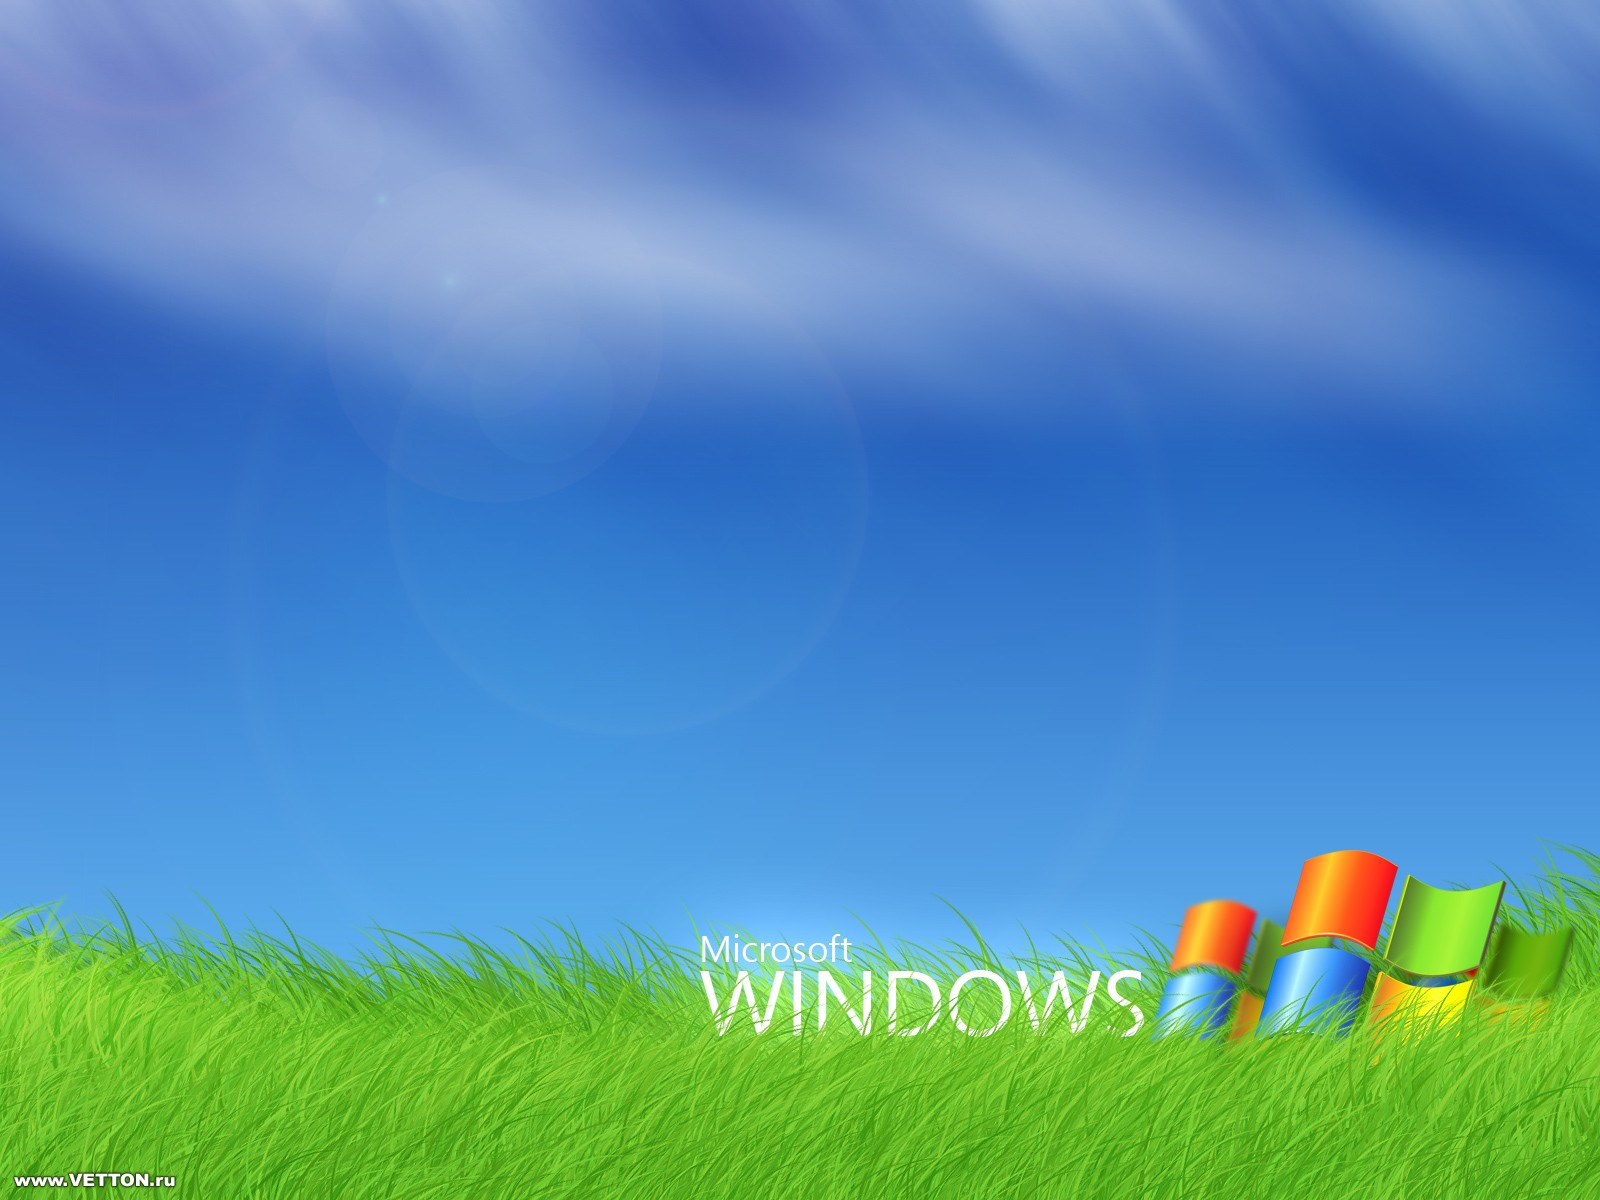 windows xp wallpaper windows xp wallpapers 1